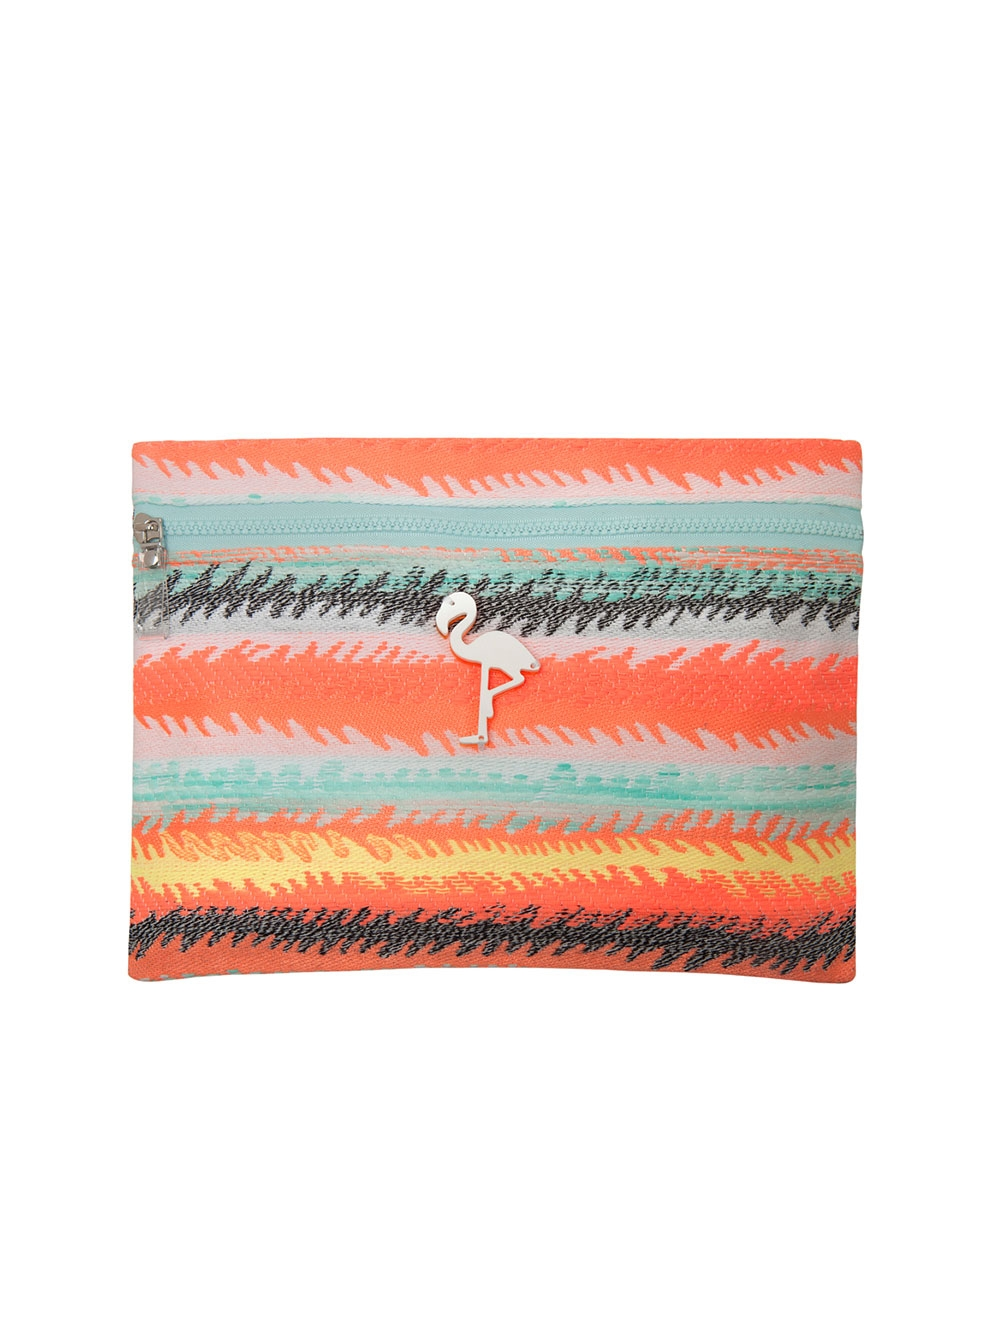 POCHETTE POLLY WATERPROOF